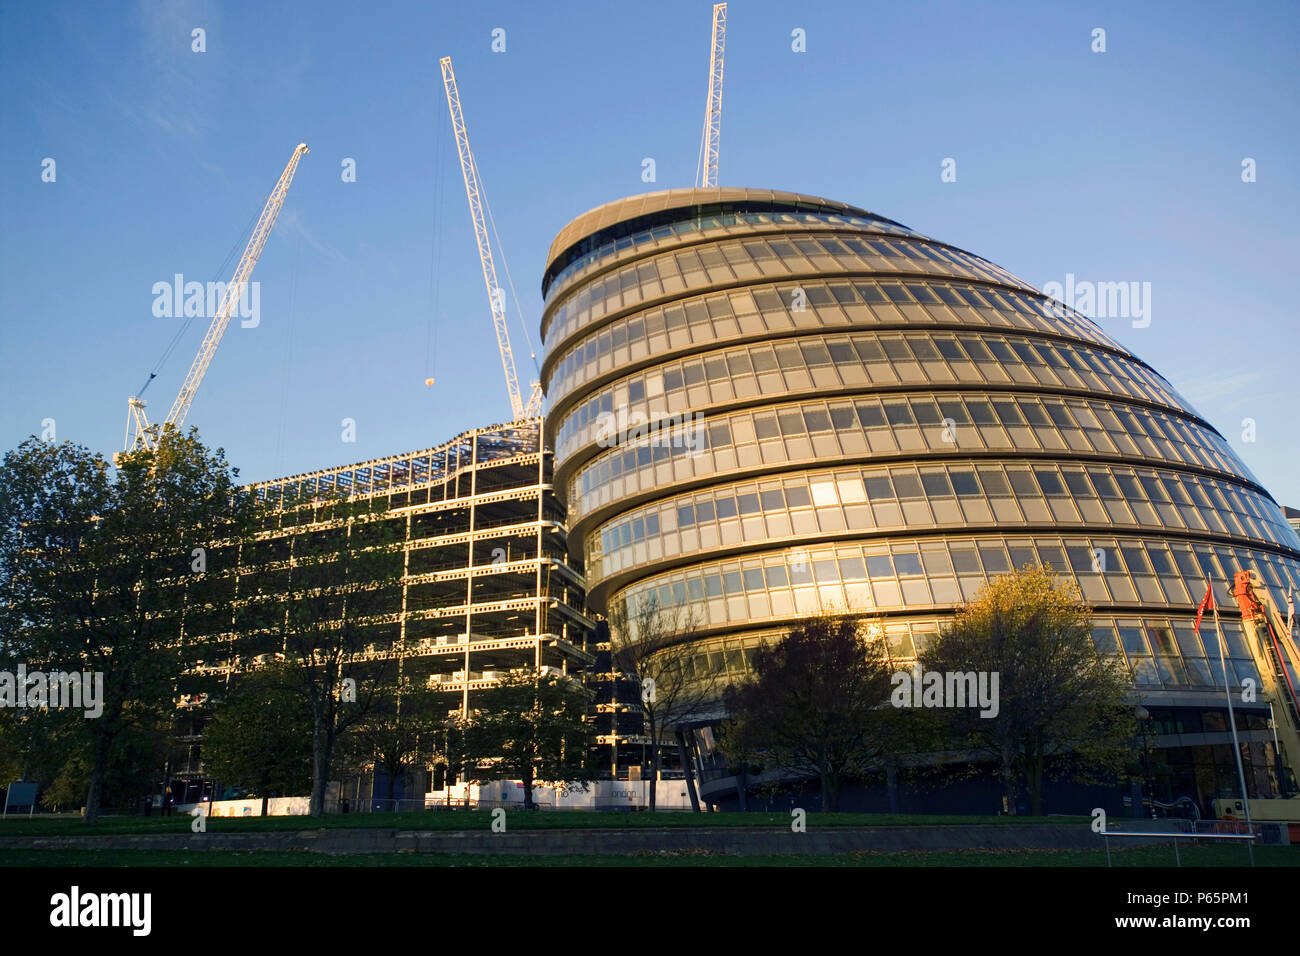 City Hall, Greater London Authority, GLA Building, by Tower Bridge, South Bank, Southwark, London, United Kingdom. Architects Norman Foster and Partne - Stock Image